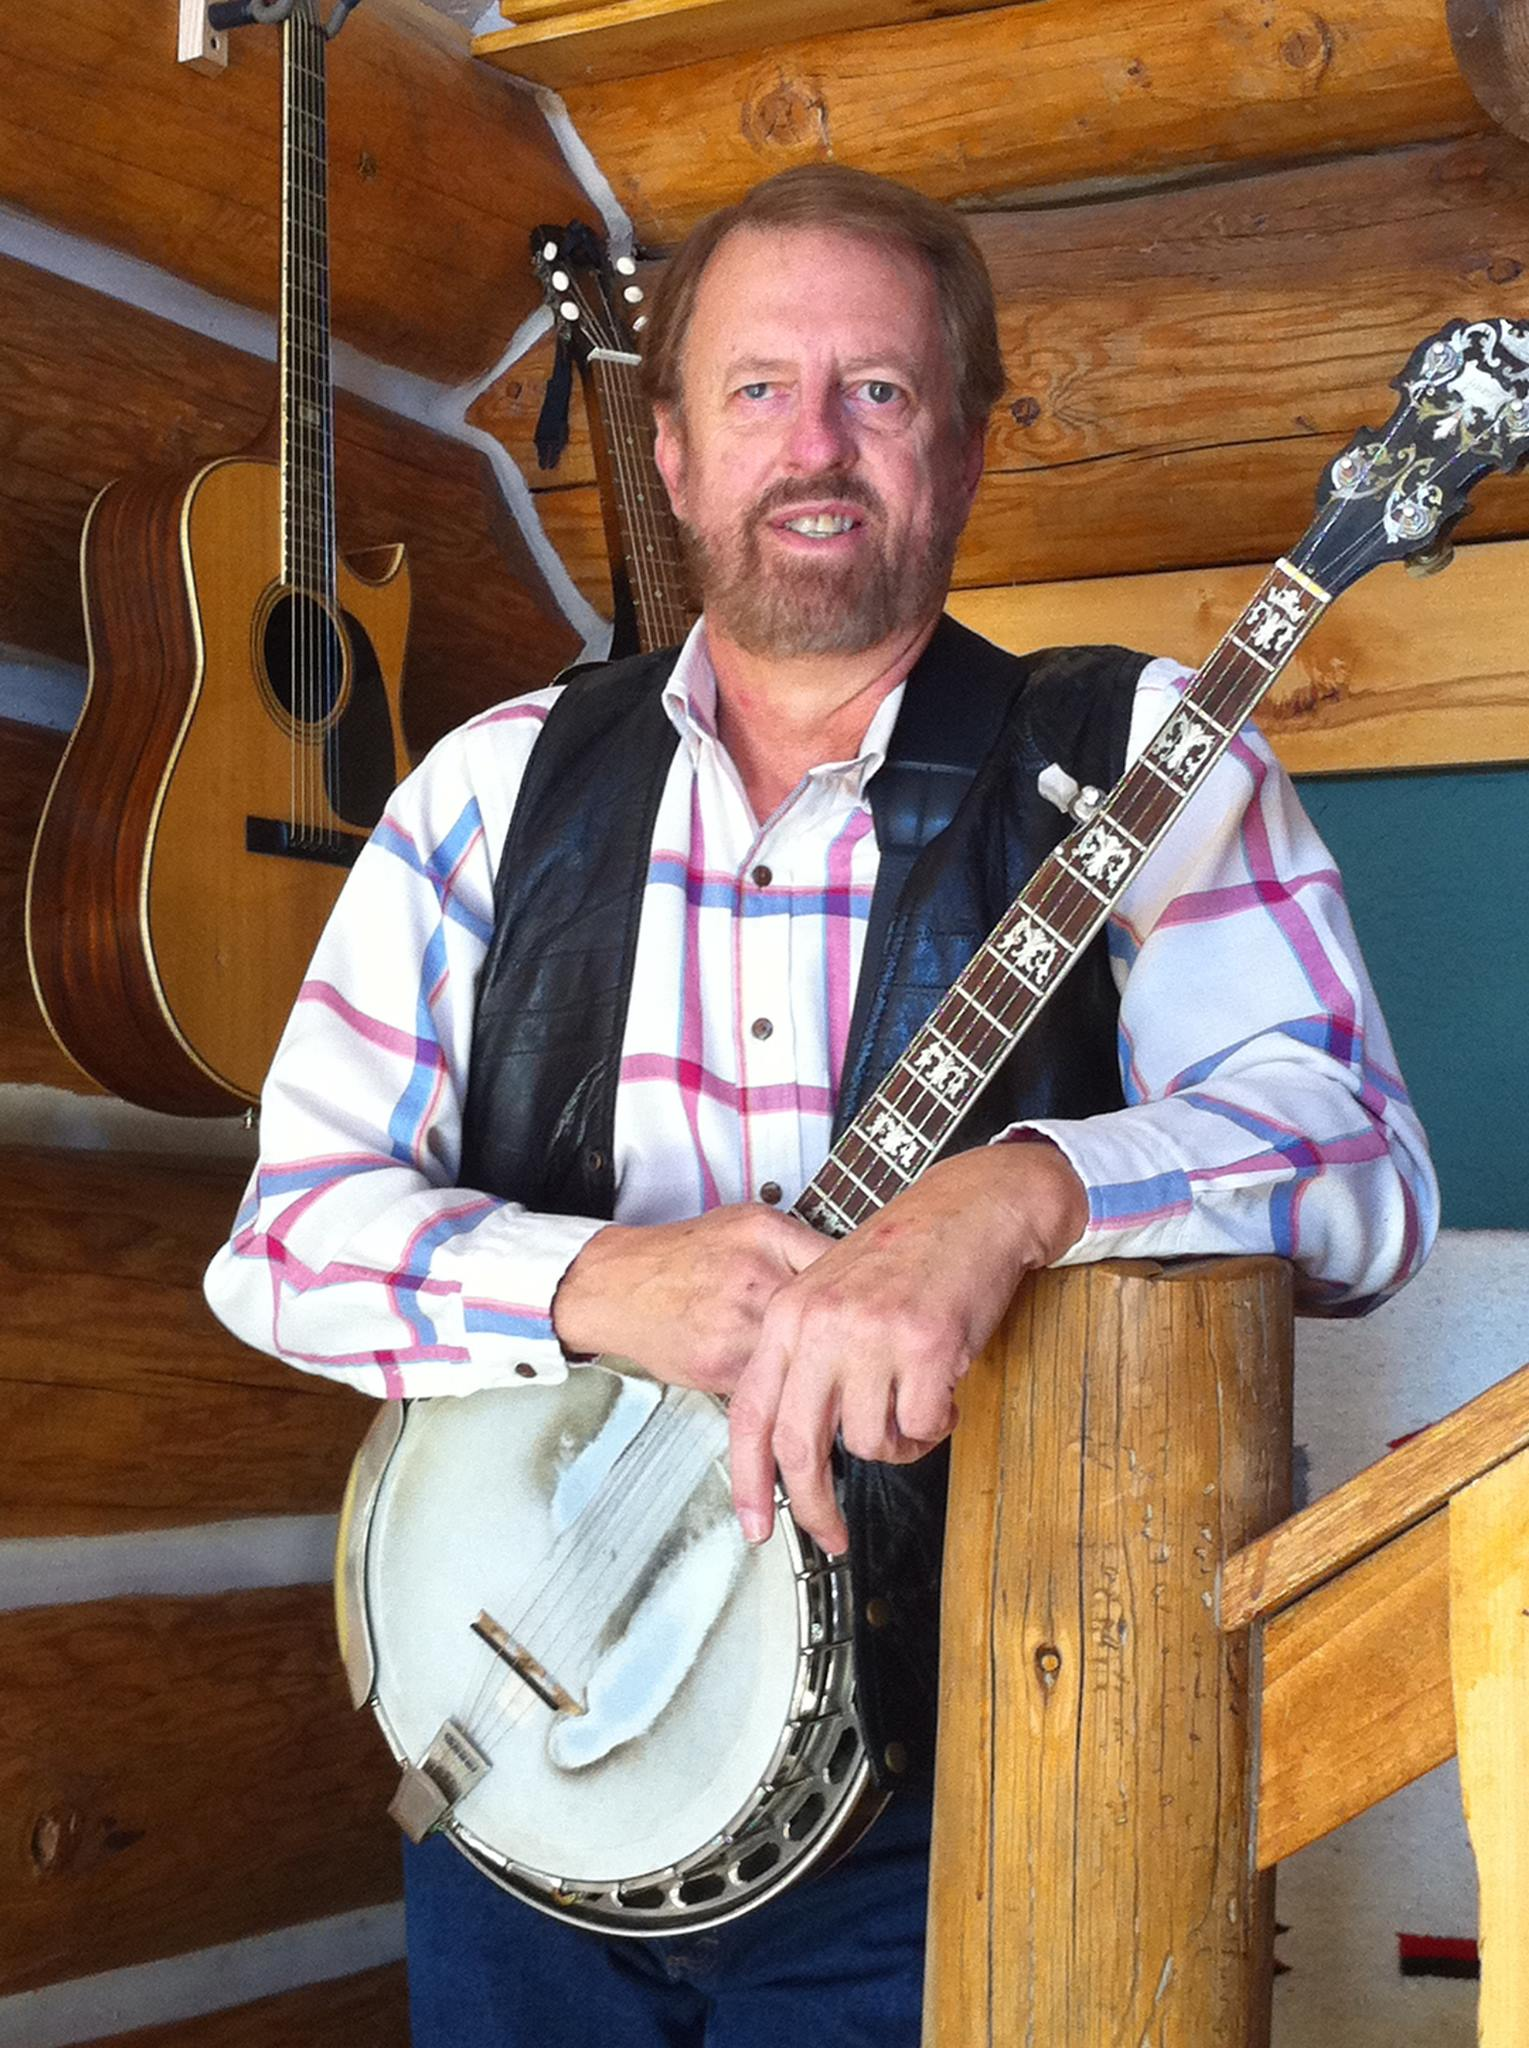 Interview with Rick Sparks of the Northern Nevada Bluegrass Association